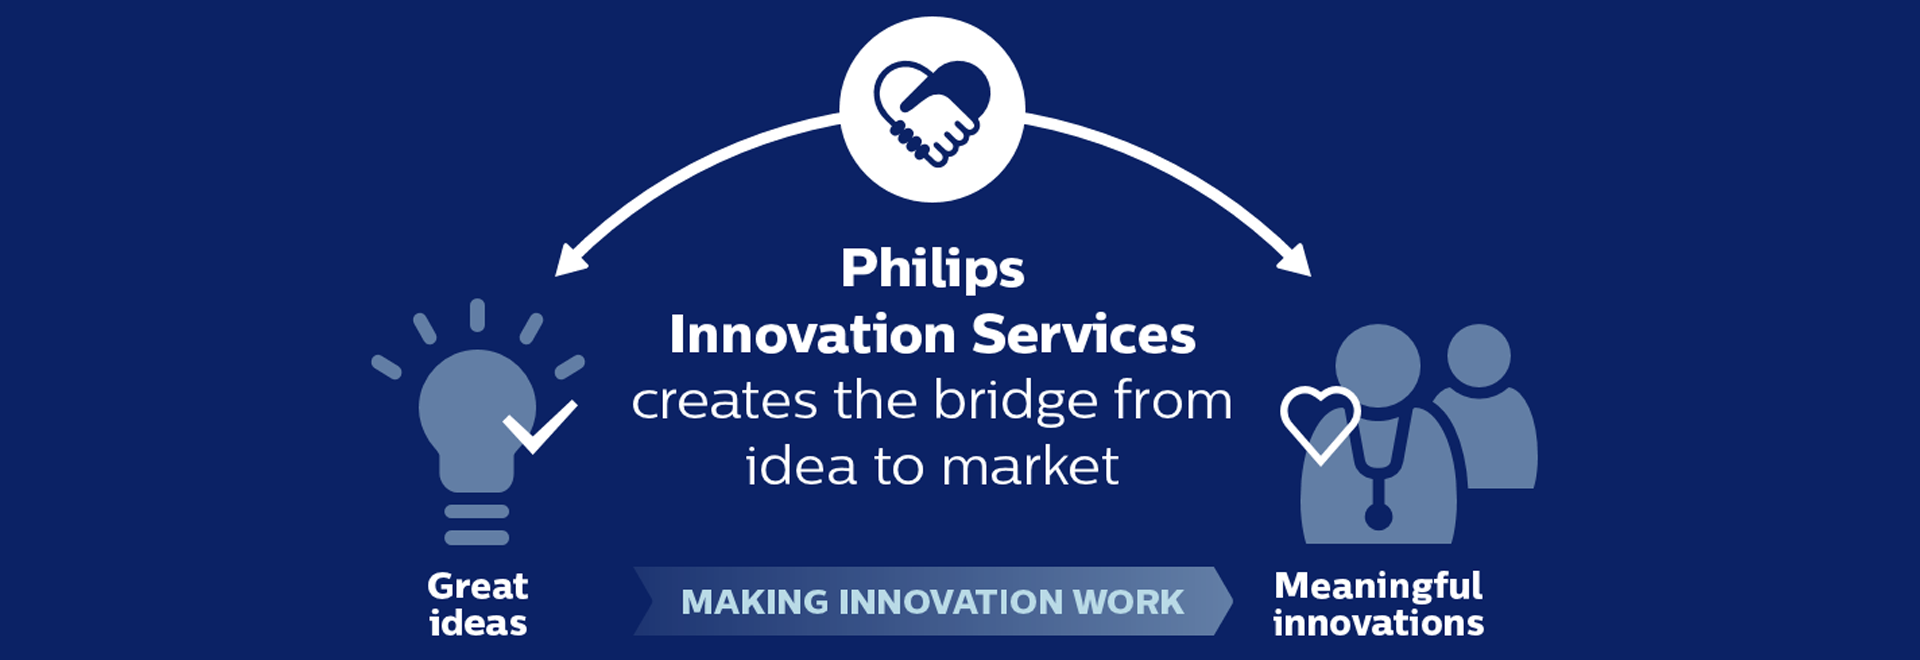 About us - Making innovation work